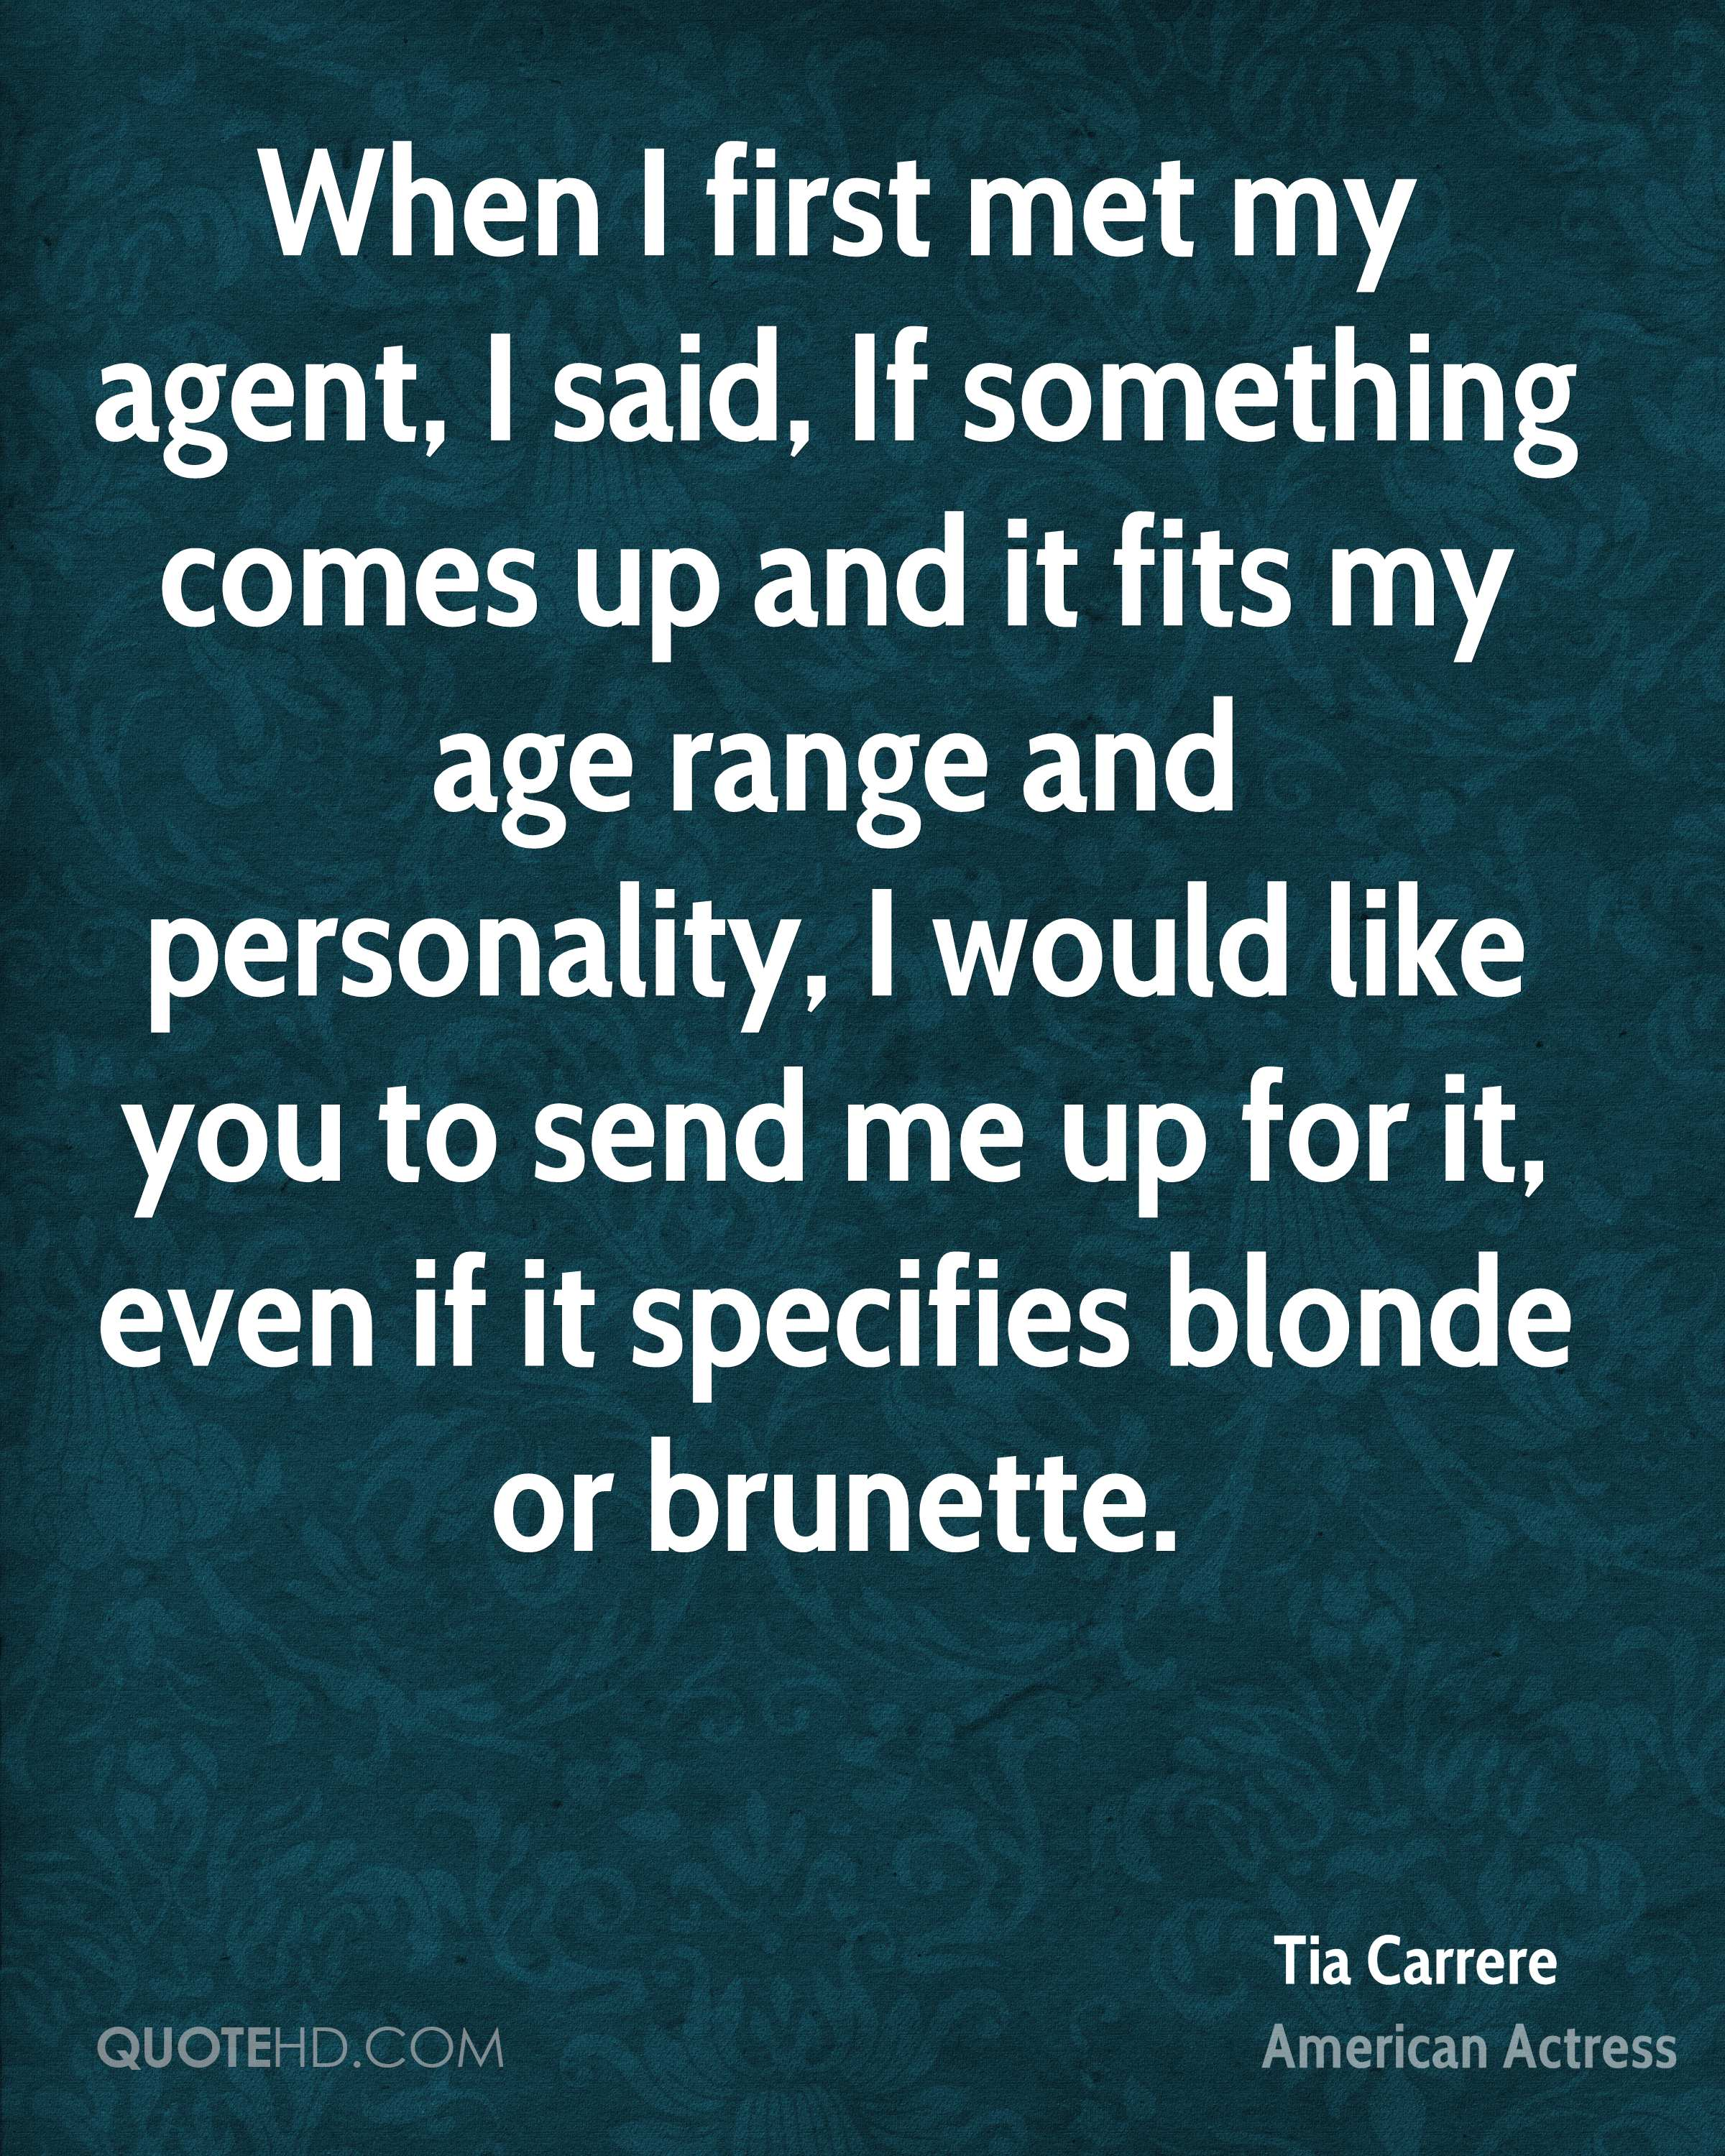 When I first met my agent, I said, If something comes up and it fits my age range and personality, I would like you to send me up for it, even if it specifies blonde or brunette.